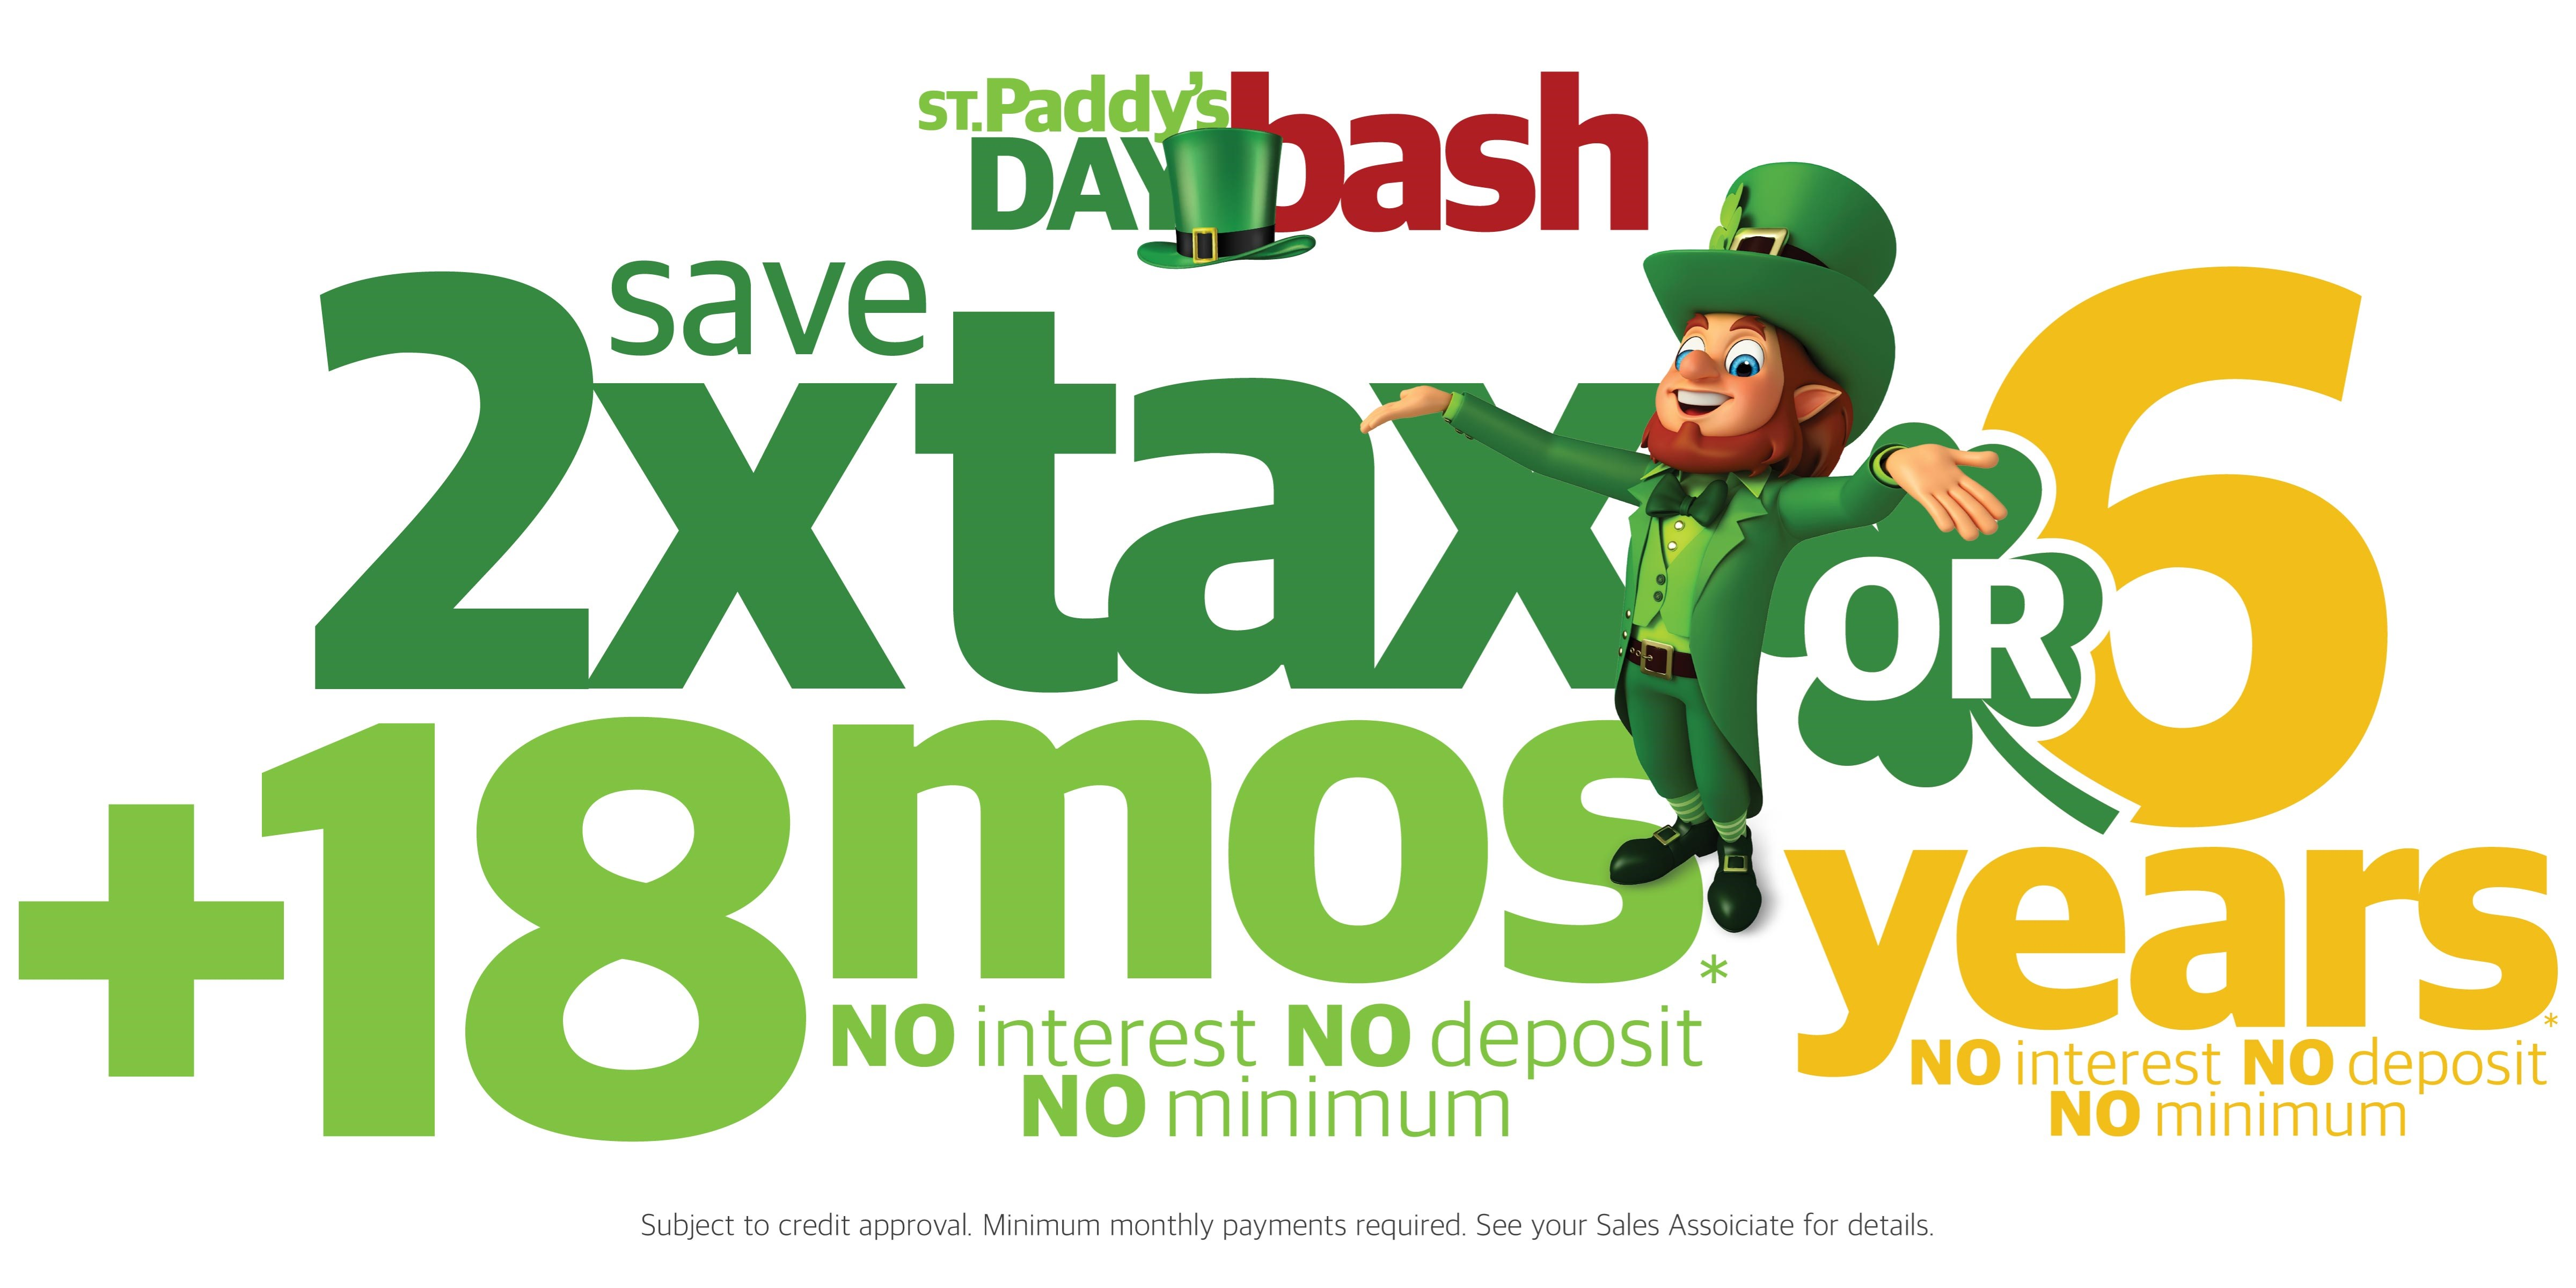 0324_St_Paddy's_Day